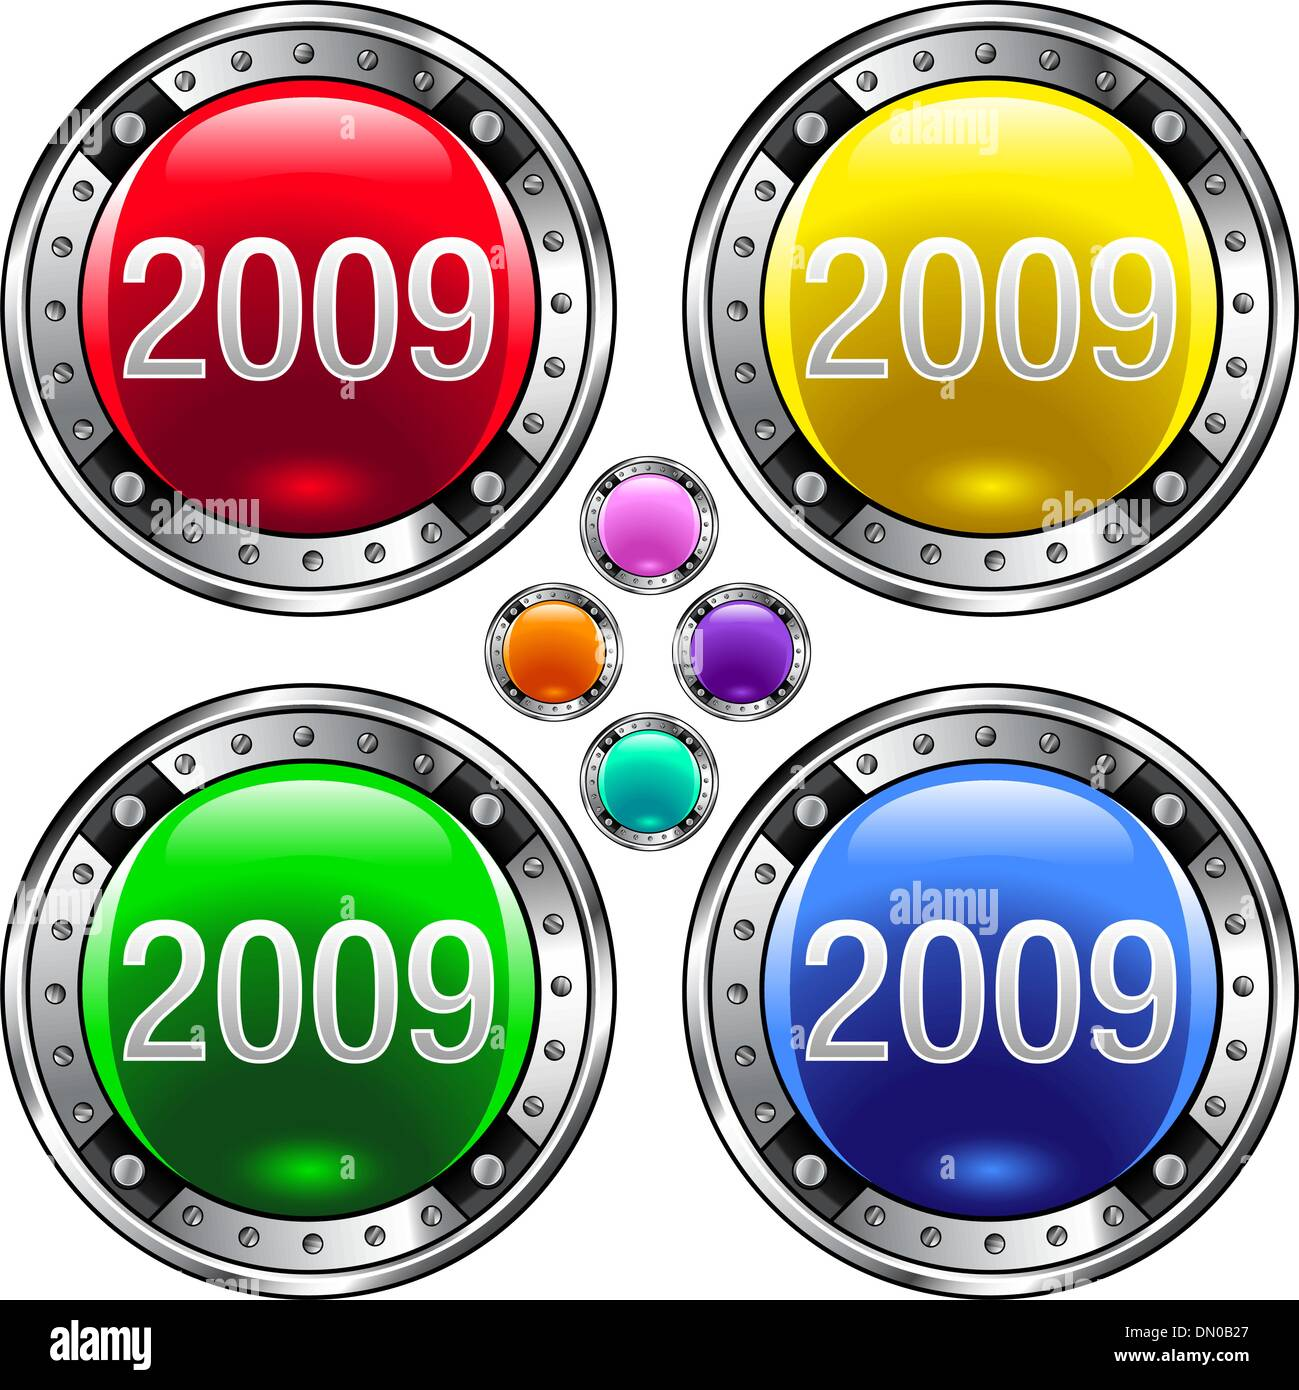 2009 colorful button - Stock Vector